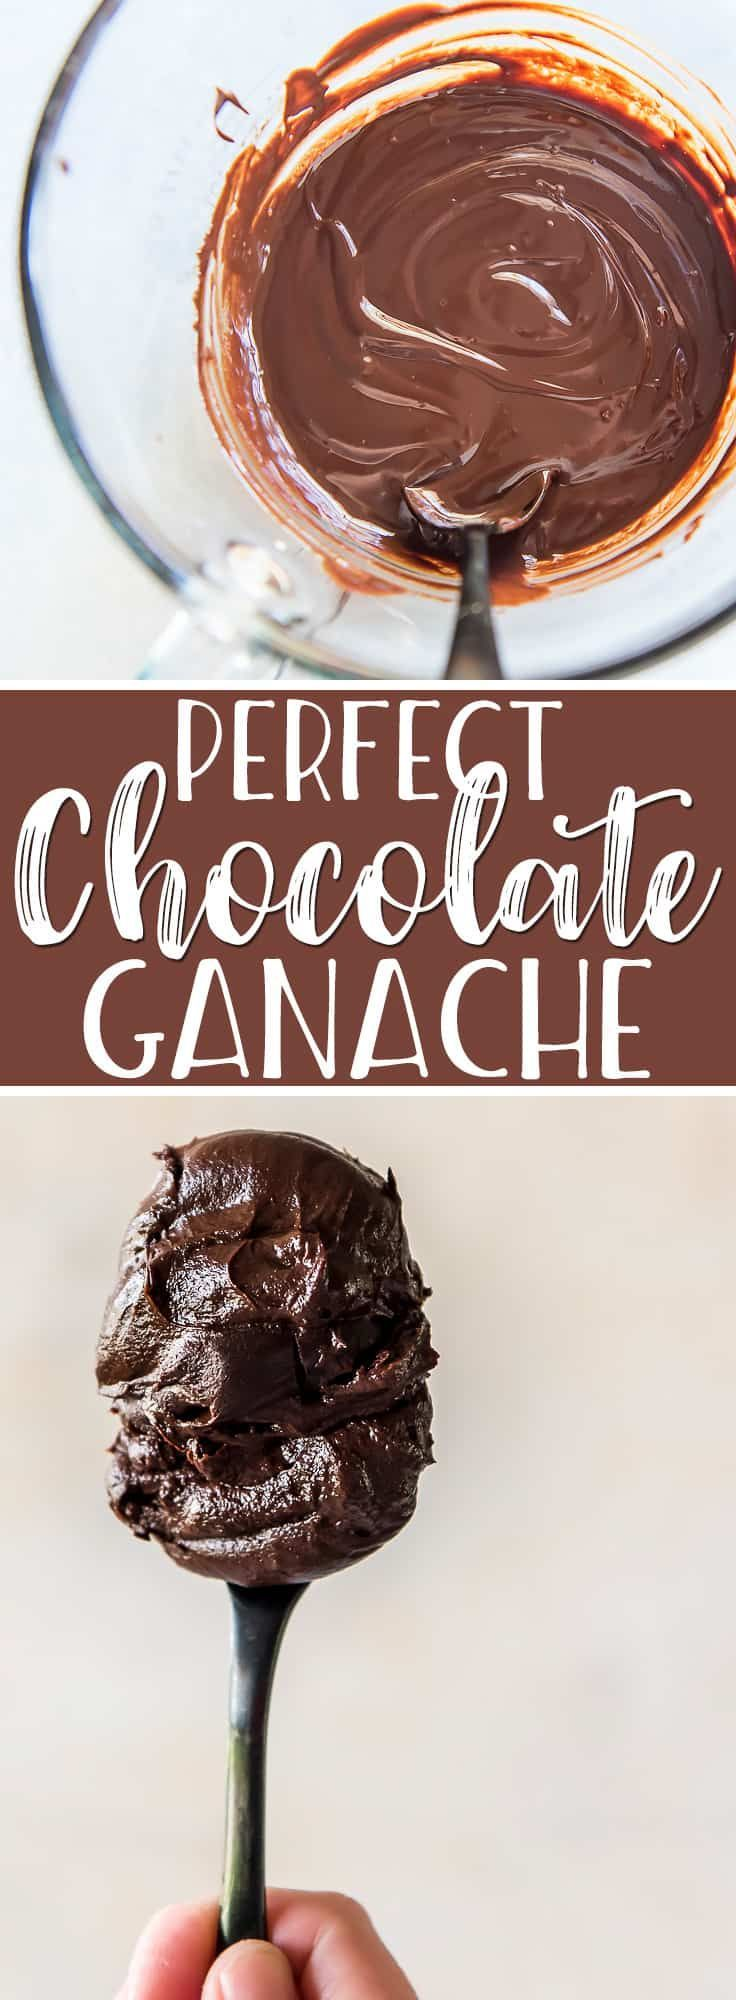 Make this 2-ingredient, 5-minute perfect chocolate ganache and you'll be pouring it over everything from cakes to ice cream sundaes! This easy, versatile recipe can also be whipped into an icing or turned into the most decadent chocolate truffles.